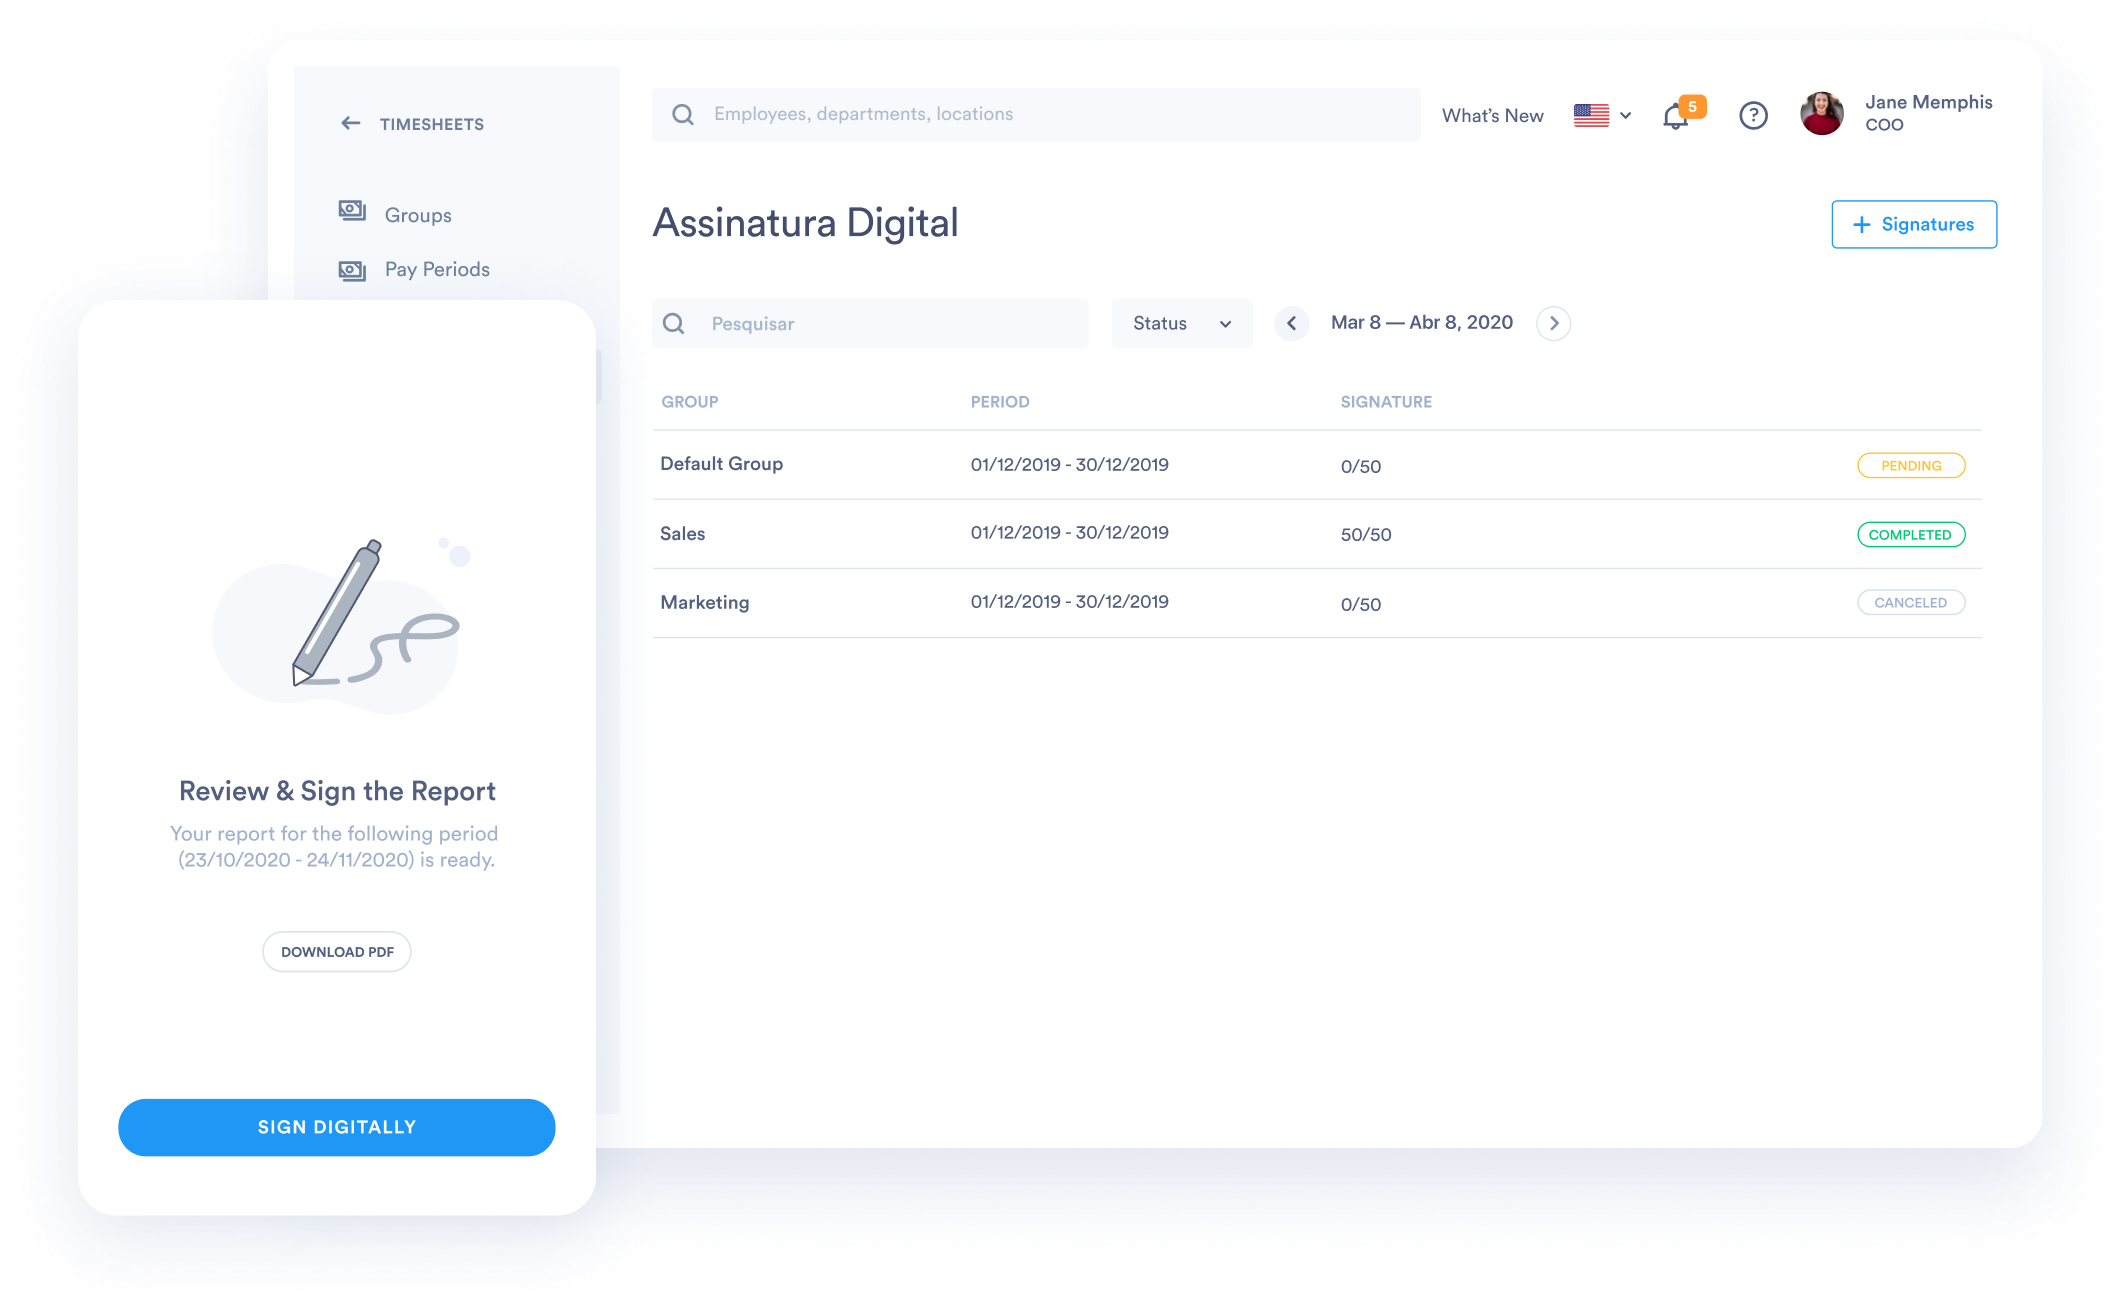 Digital Signatures for Timesheets